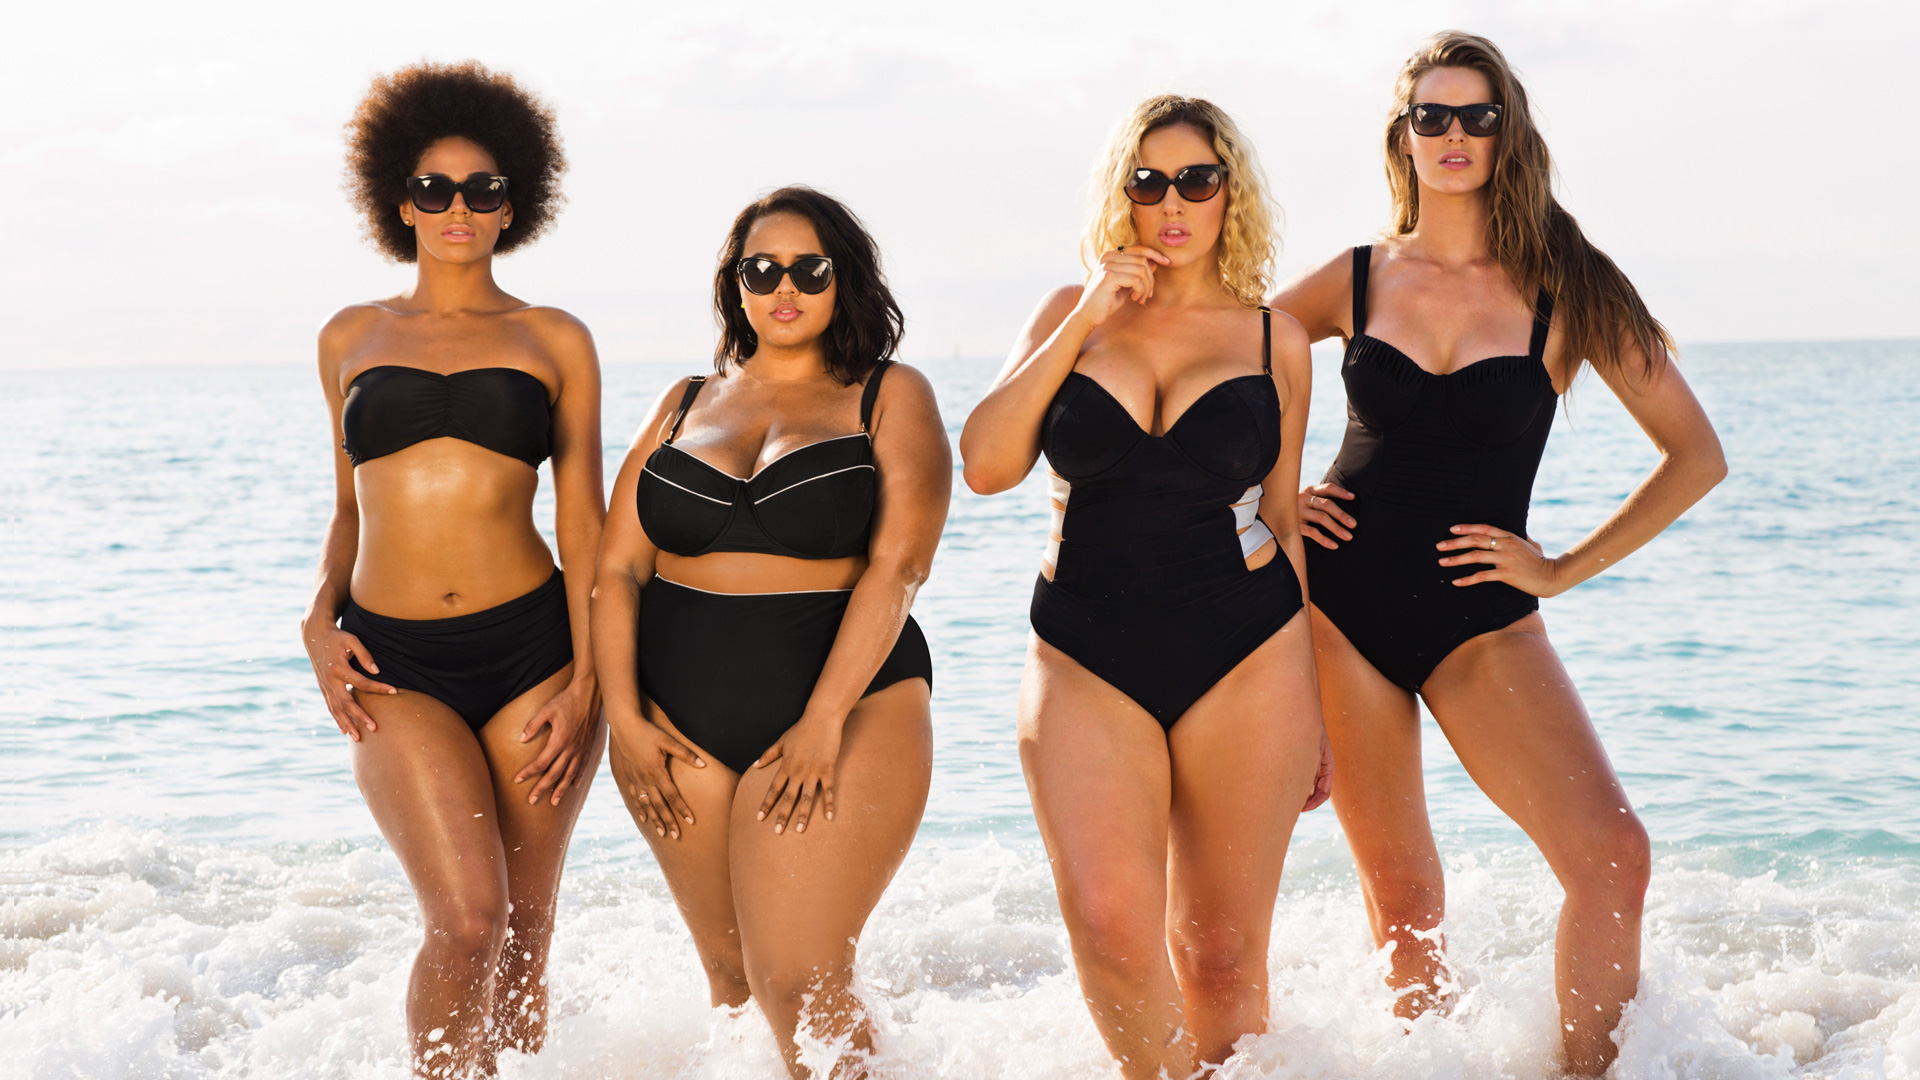 Plus size sports illustrated swimsuit model were visited